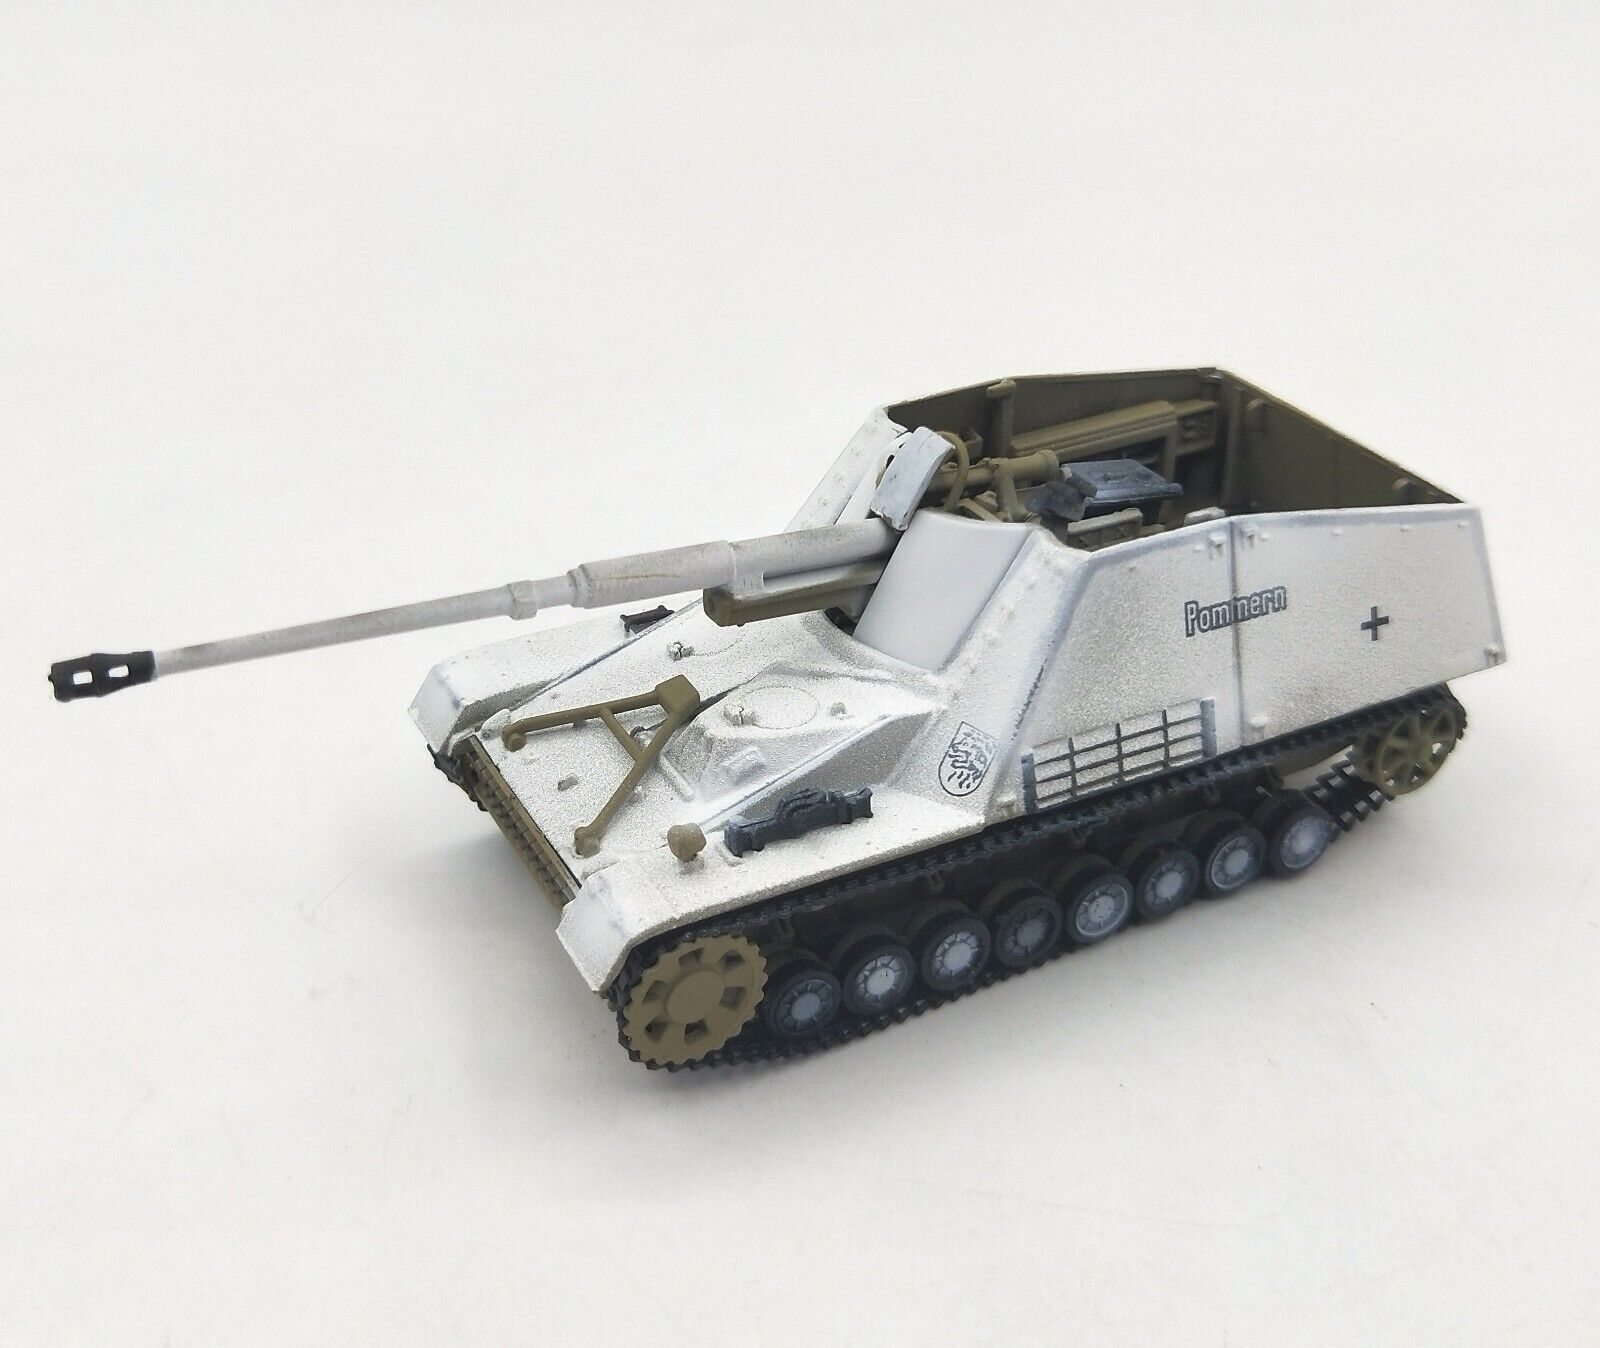 1 72 GERMAN Pommern Nashorn WWII Tank Diecast Military Armor Model Collection